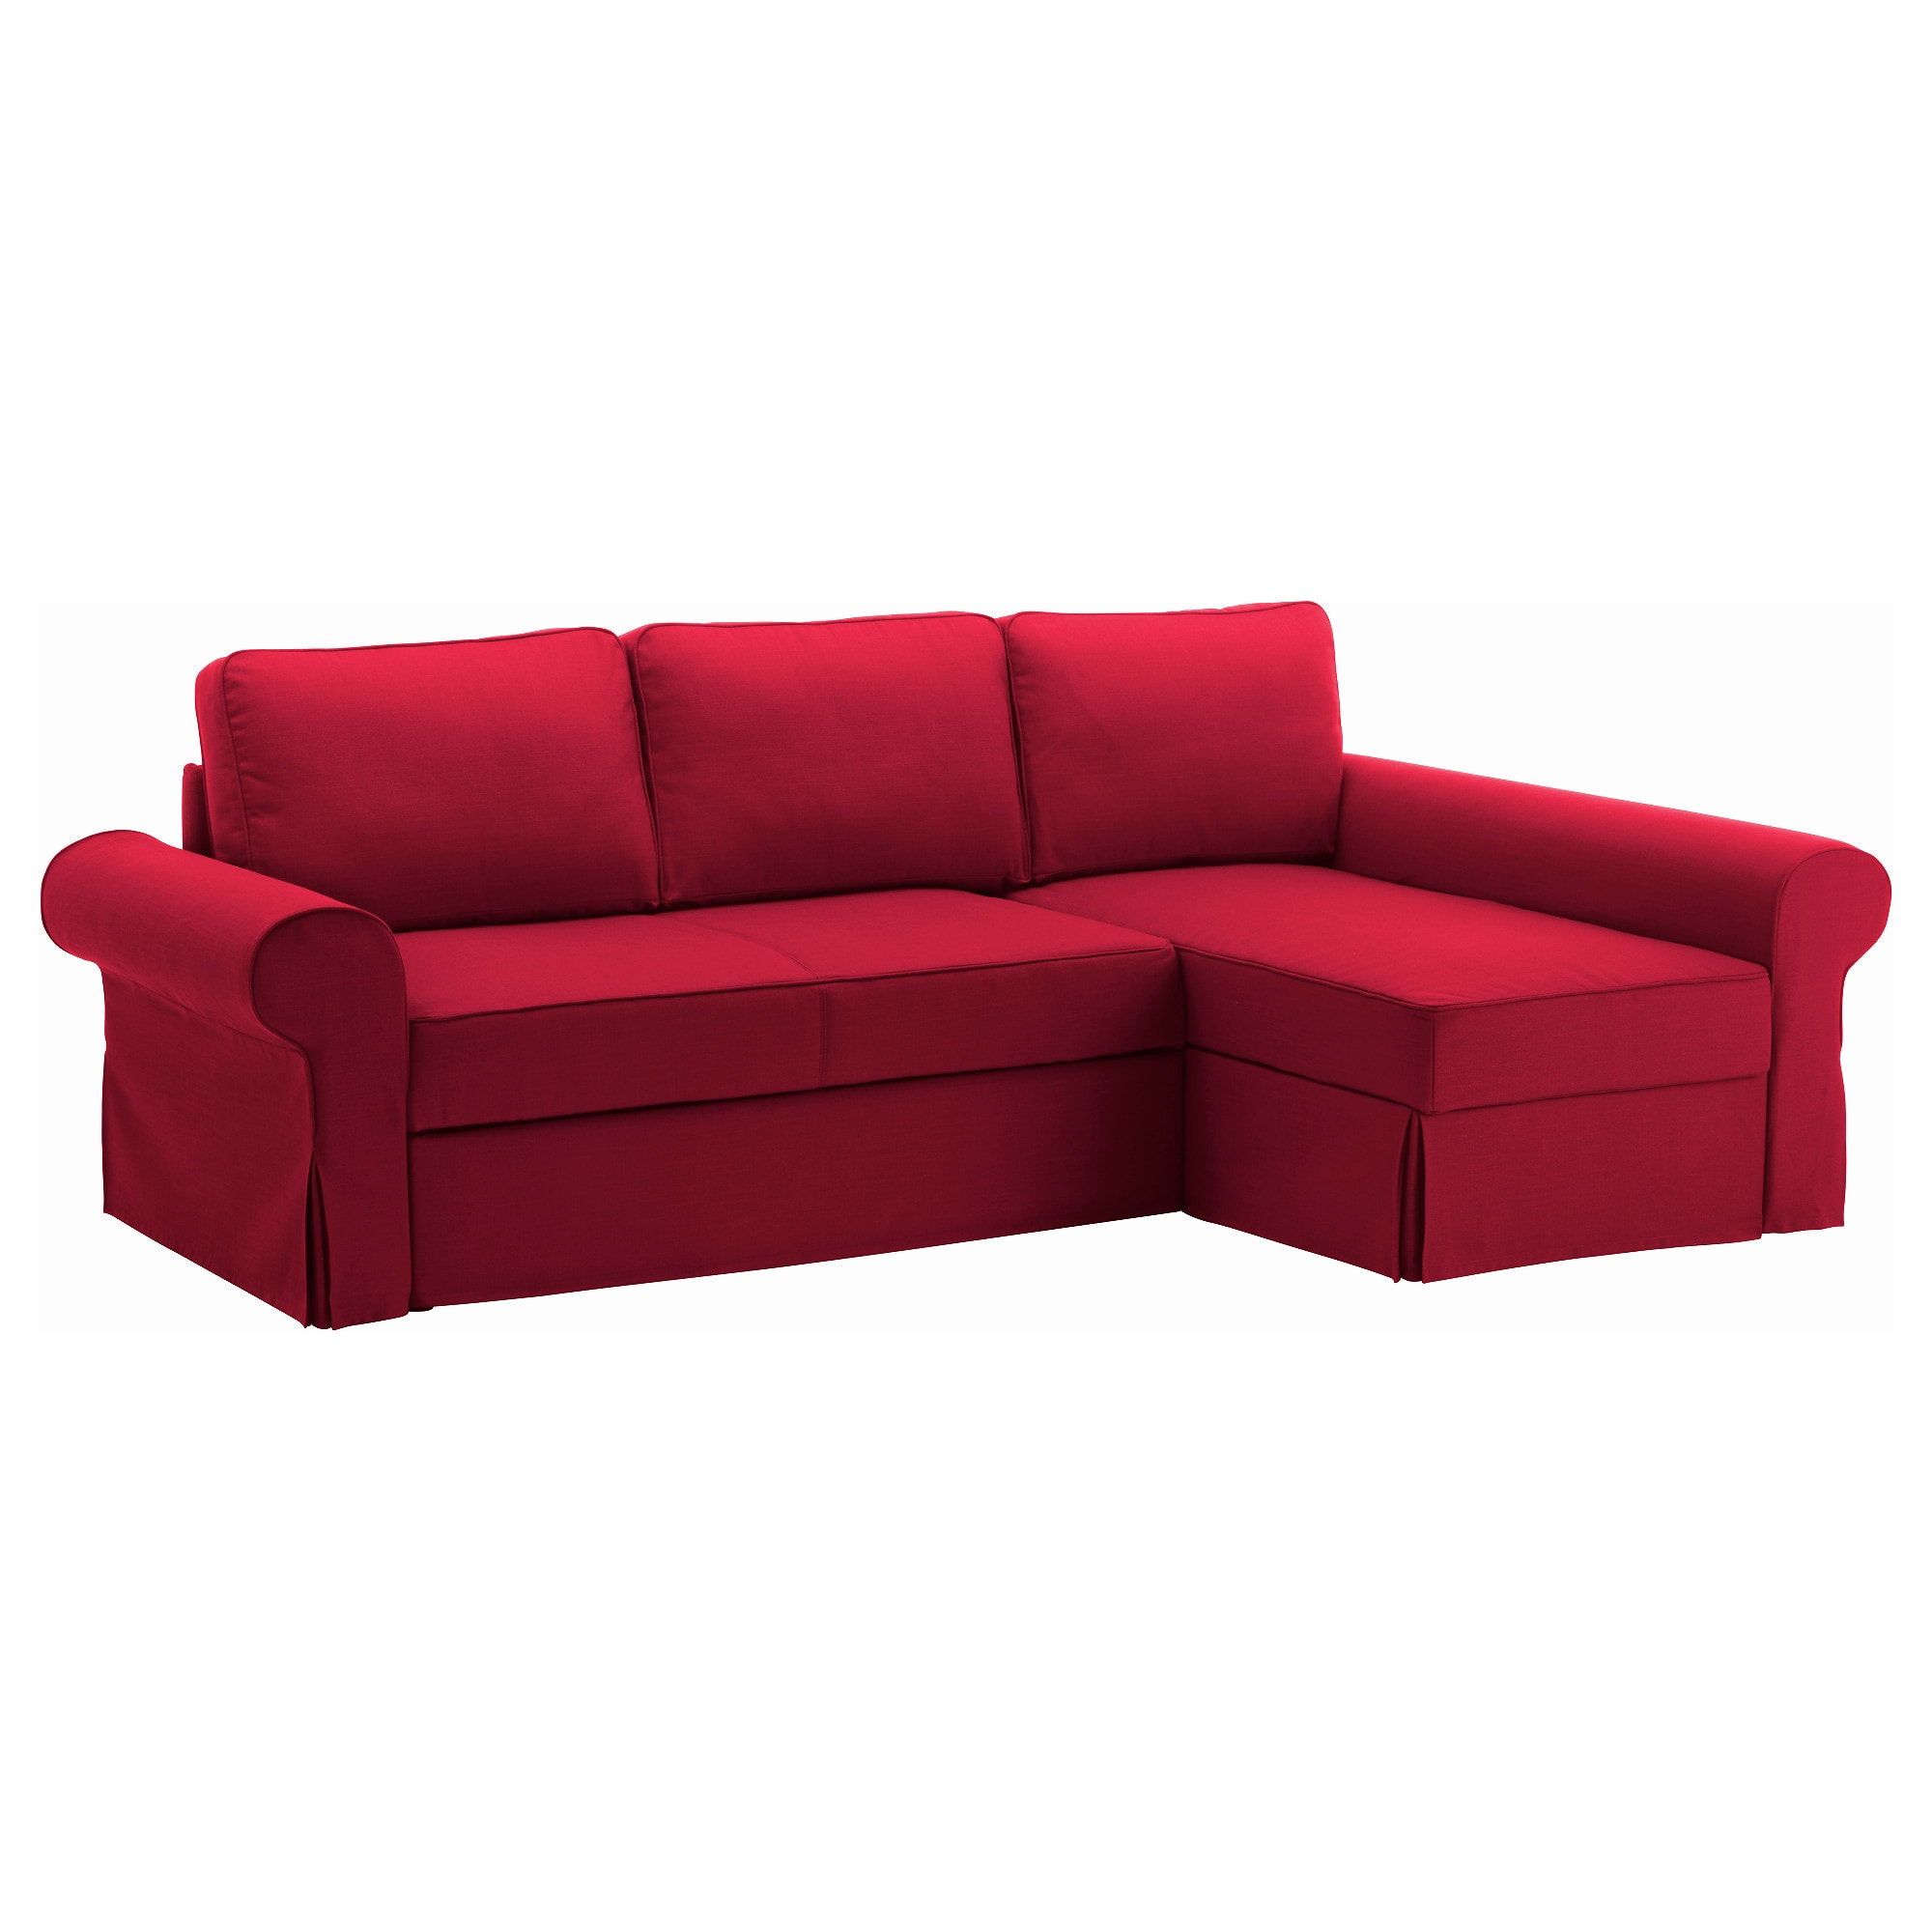 Ikea In Red Sofas And Chairs (View 8 of 20)